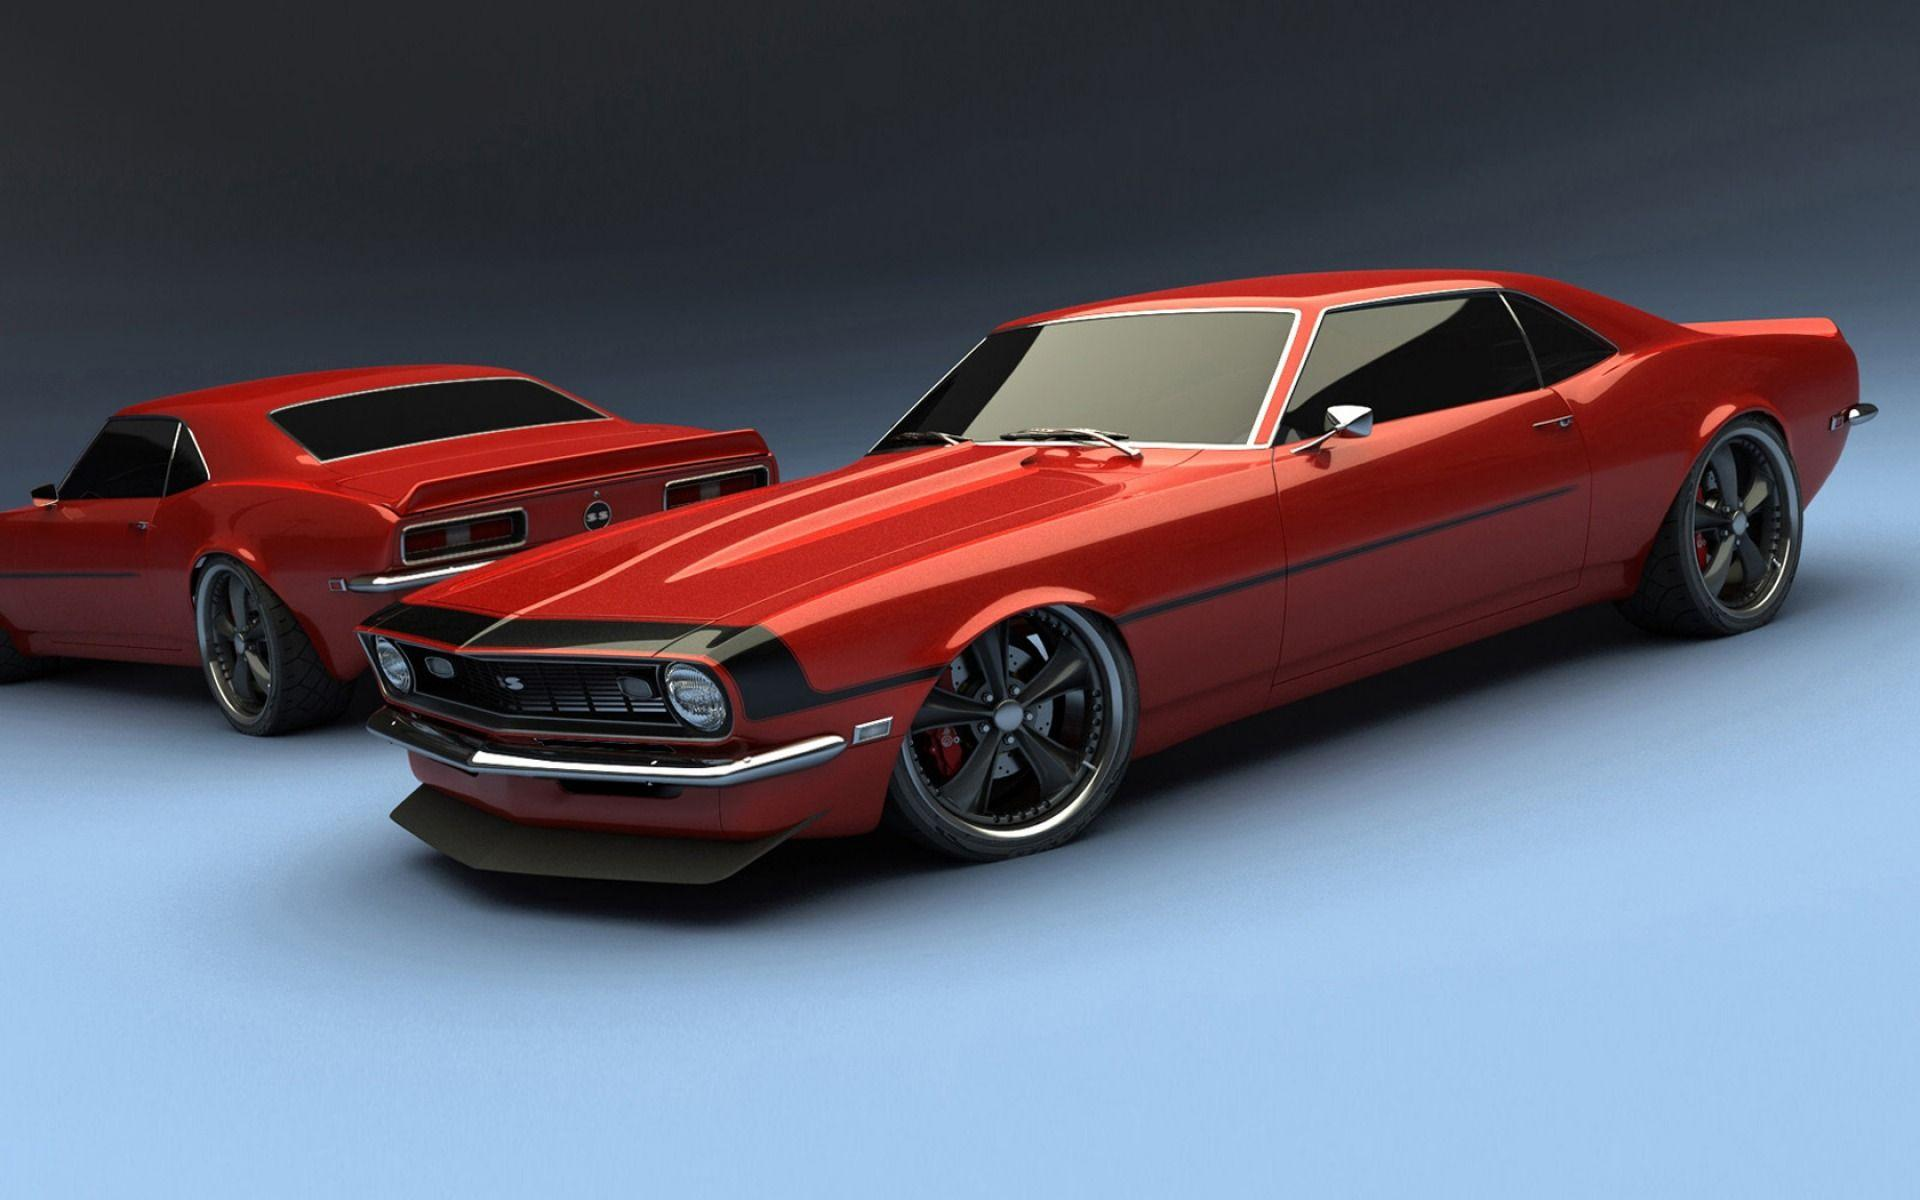 Chevy Muscle Car Wallpaper #11731 | Hdwidescreens.